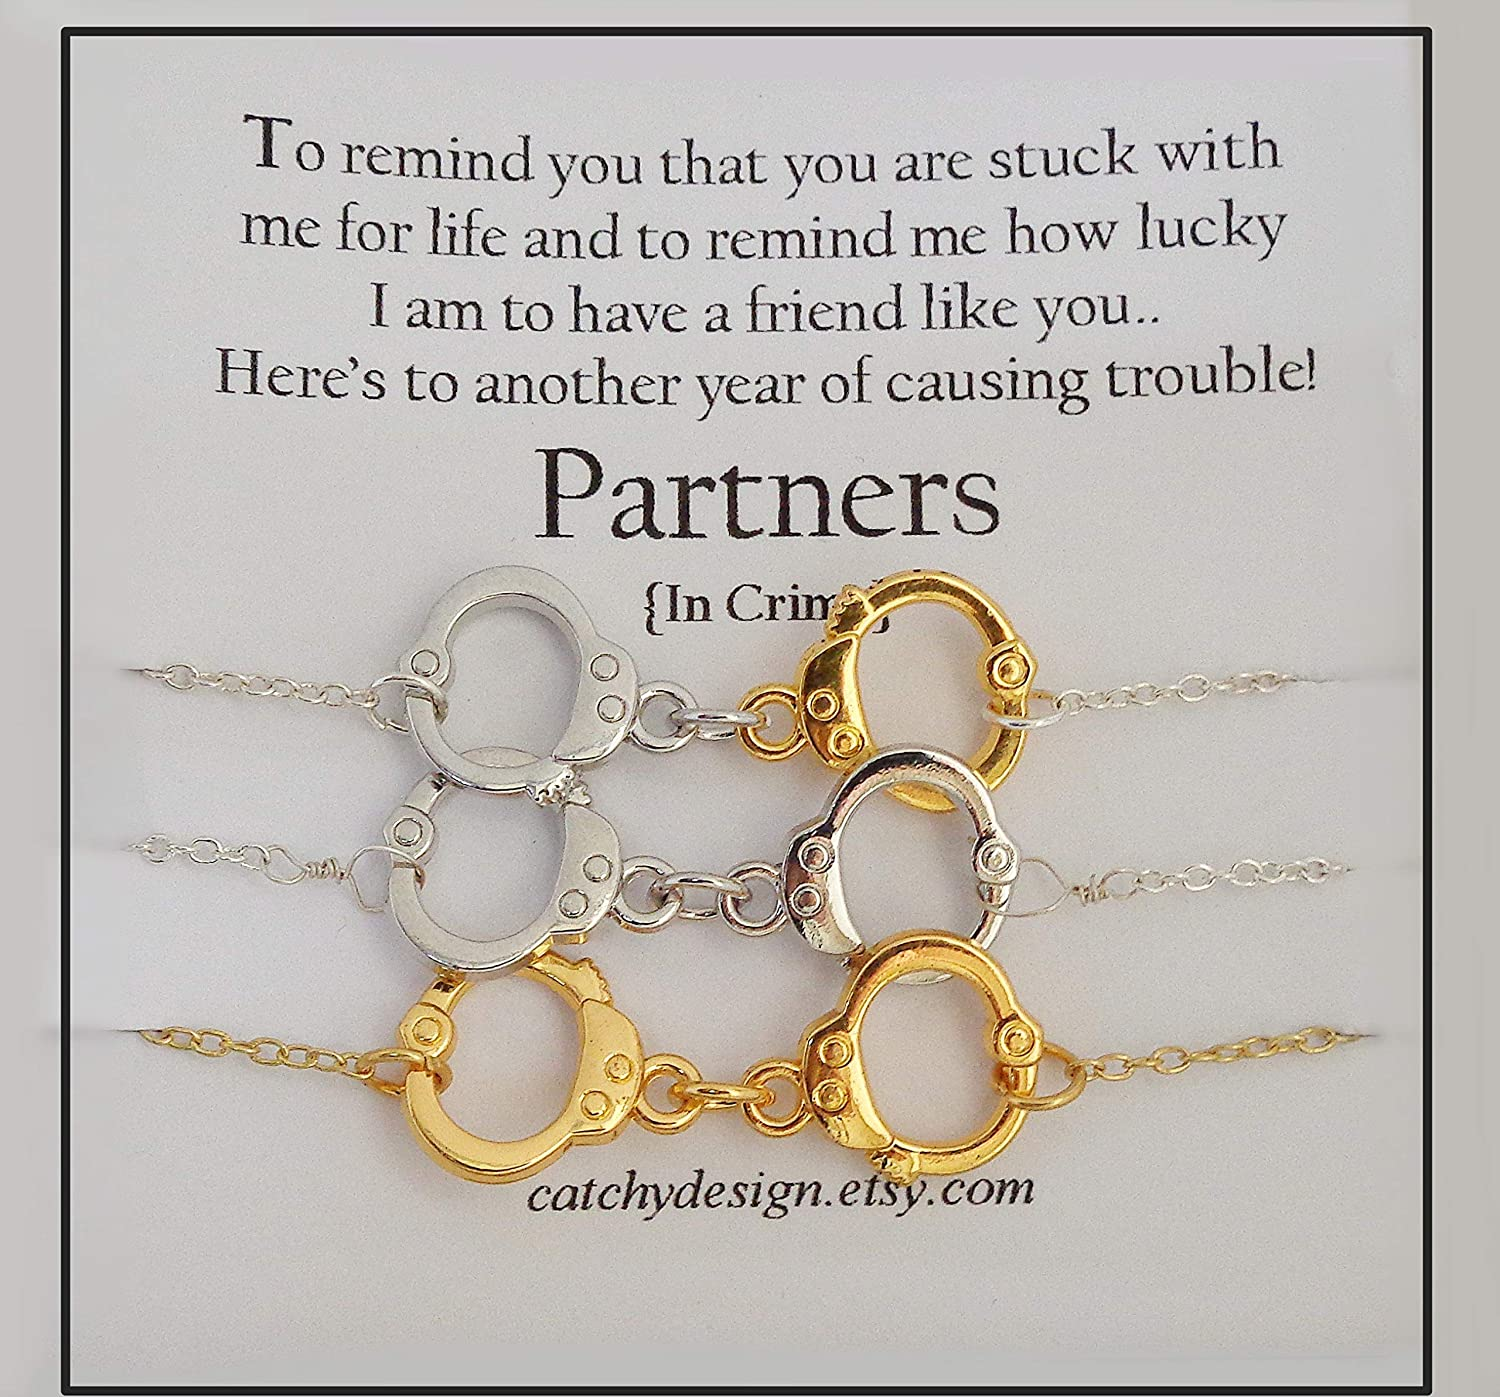 com best friend gift set of partners in crime necklaces